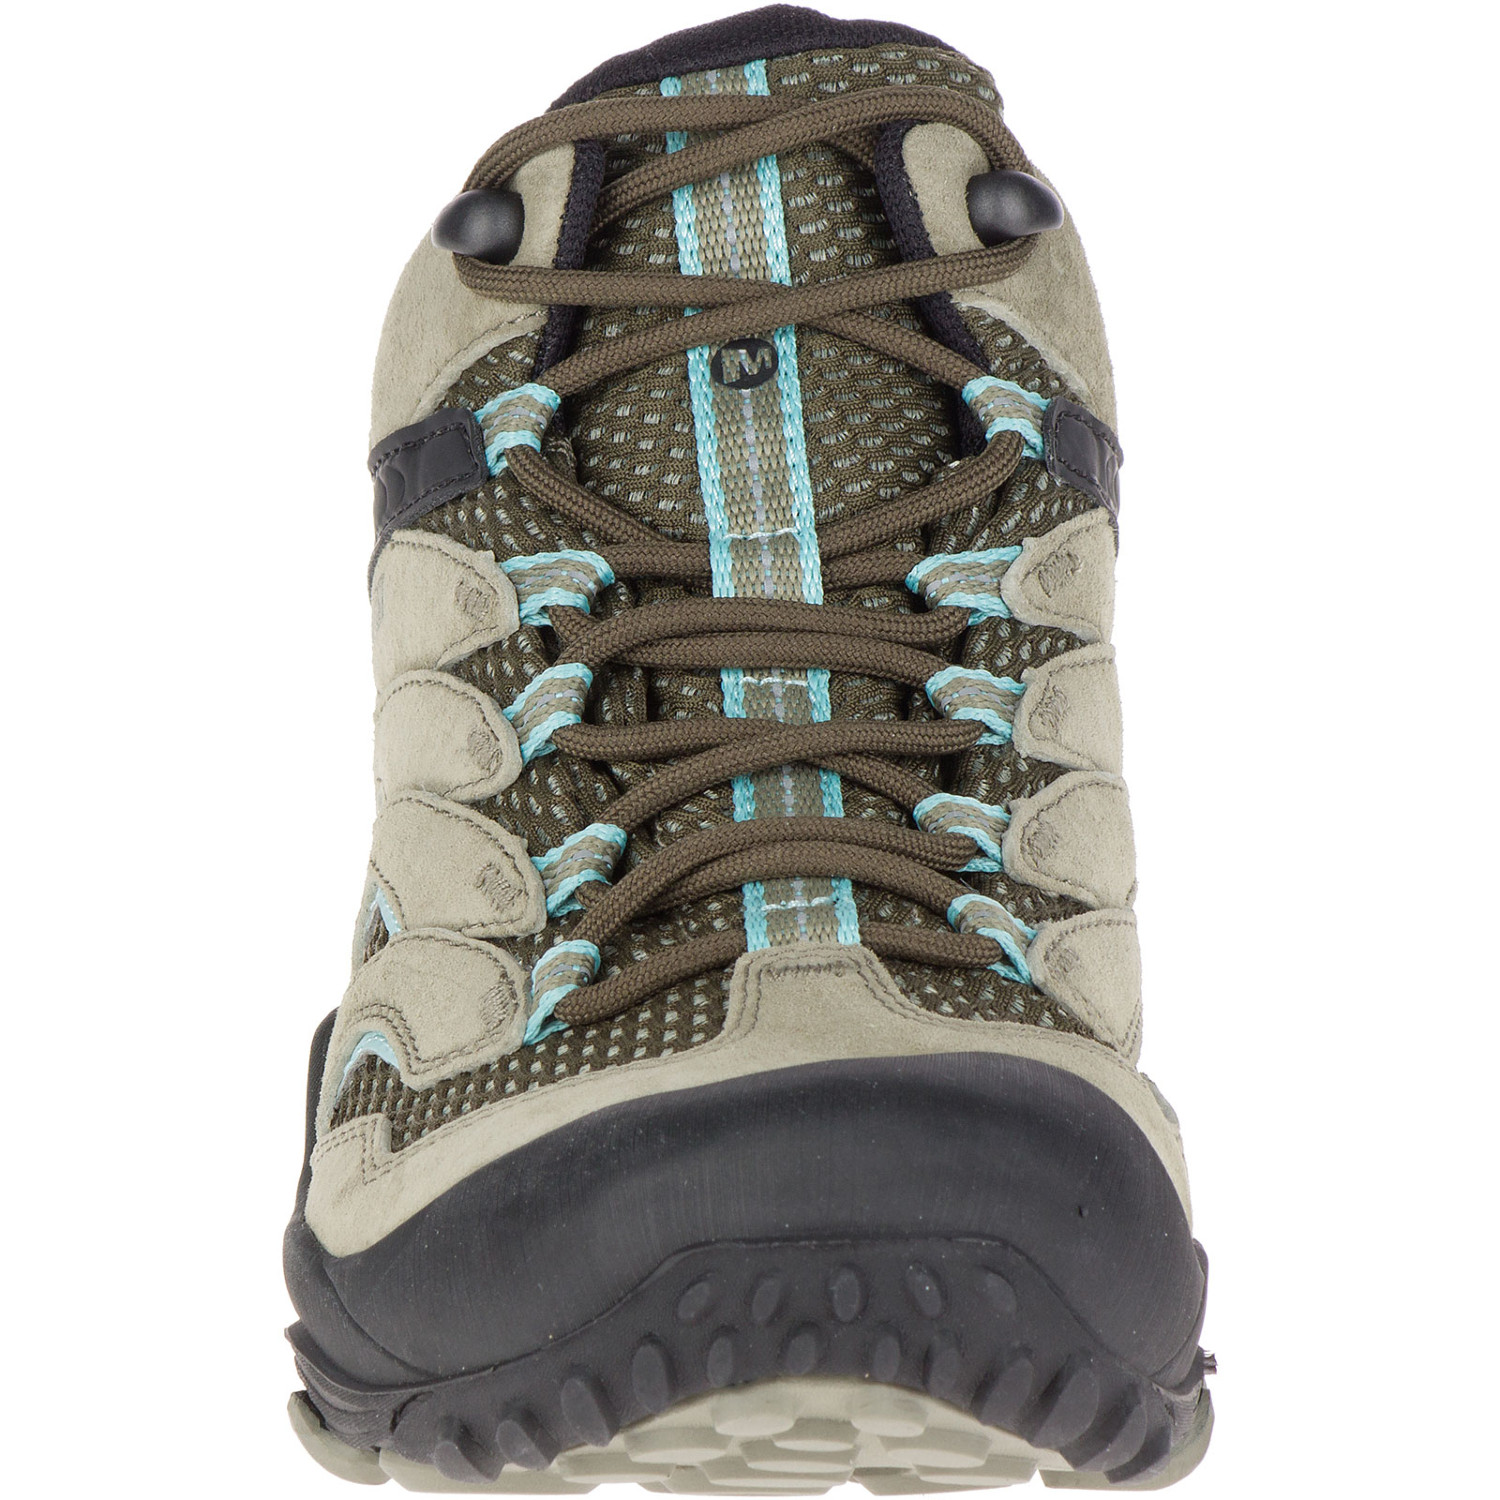 Womens Chameleon 7 Limit Mid Waterproof Shoe